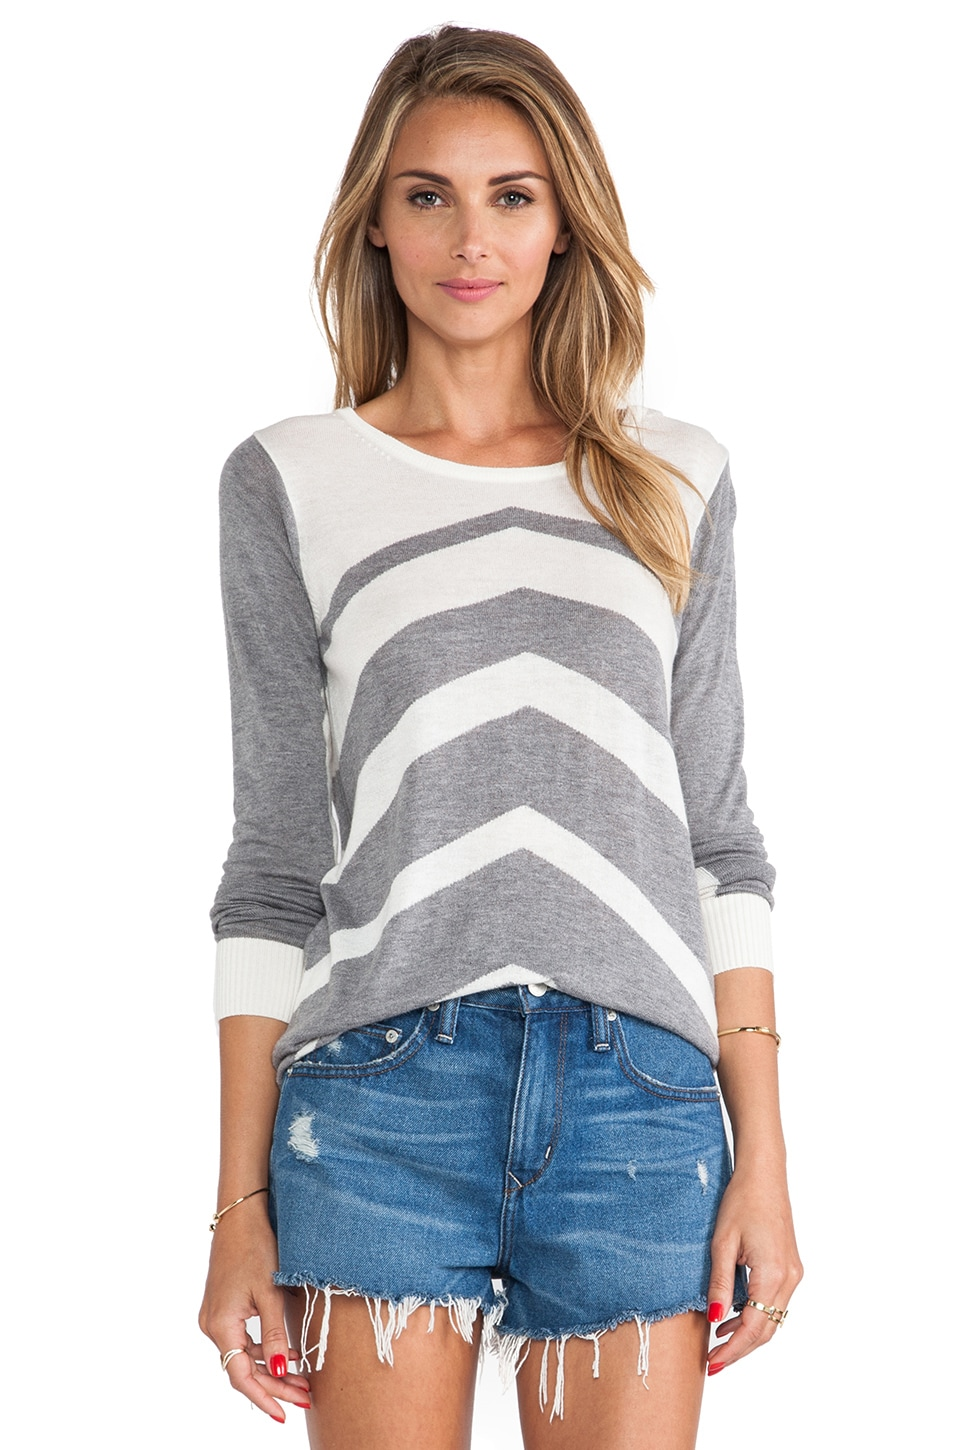 C&C California Chevron Stripe Sweater in White